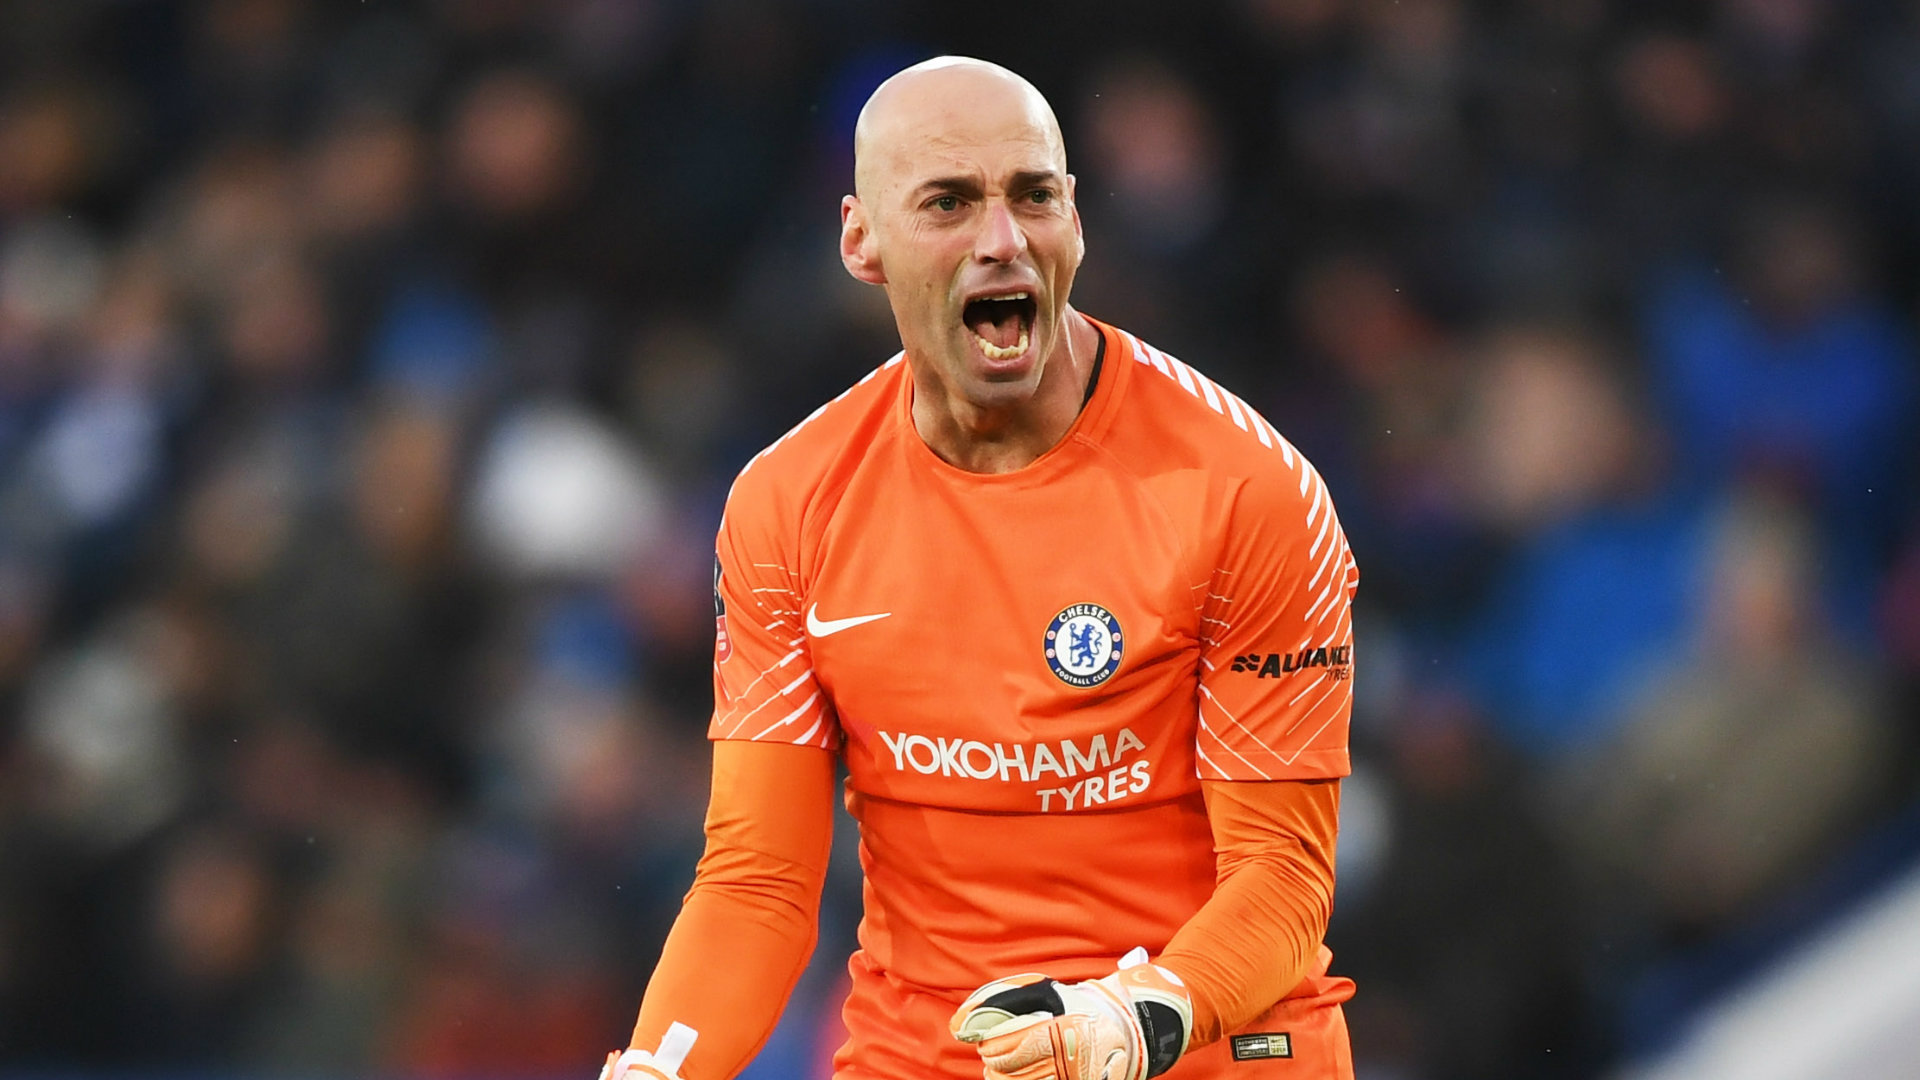 FA Cup Final 2018: Chelsea goalkeeper Willy Caballero hopes to start ahead  of Thibaut Courtois against Manchester United | Goal.com